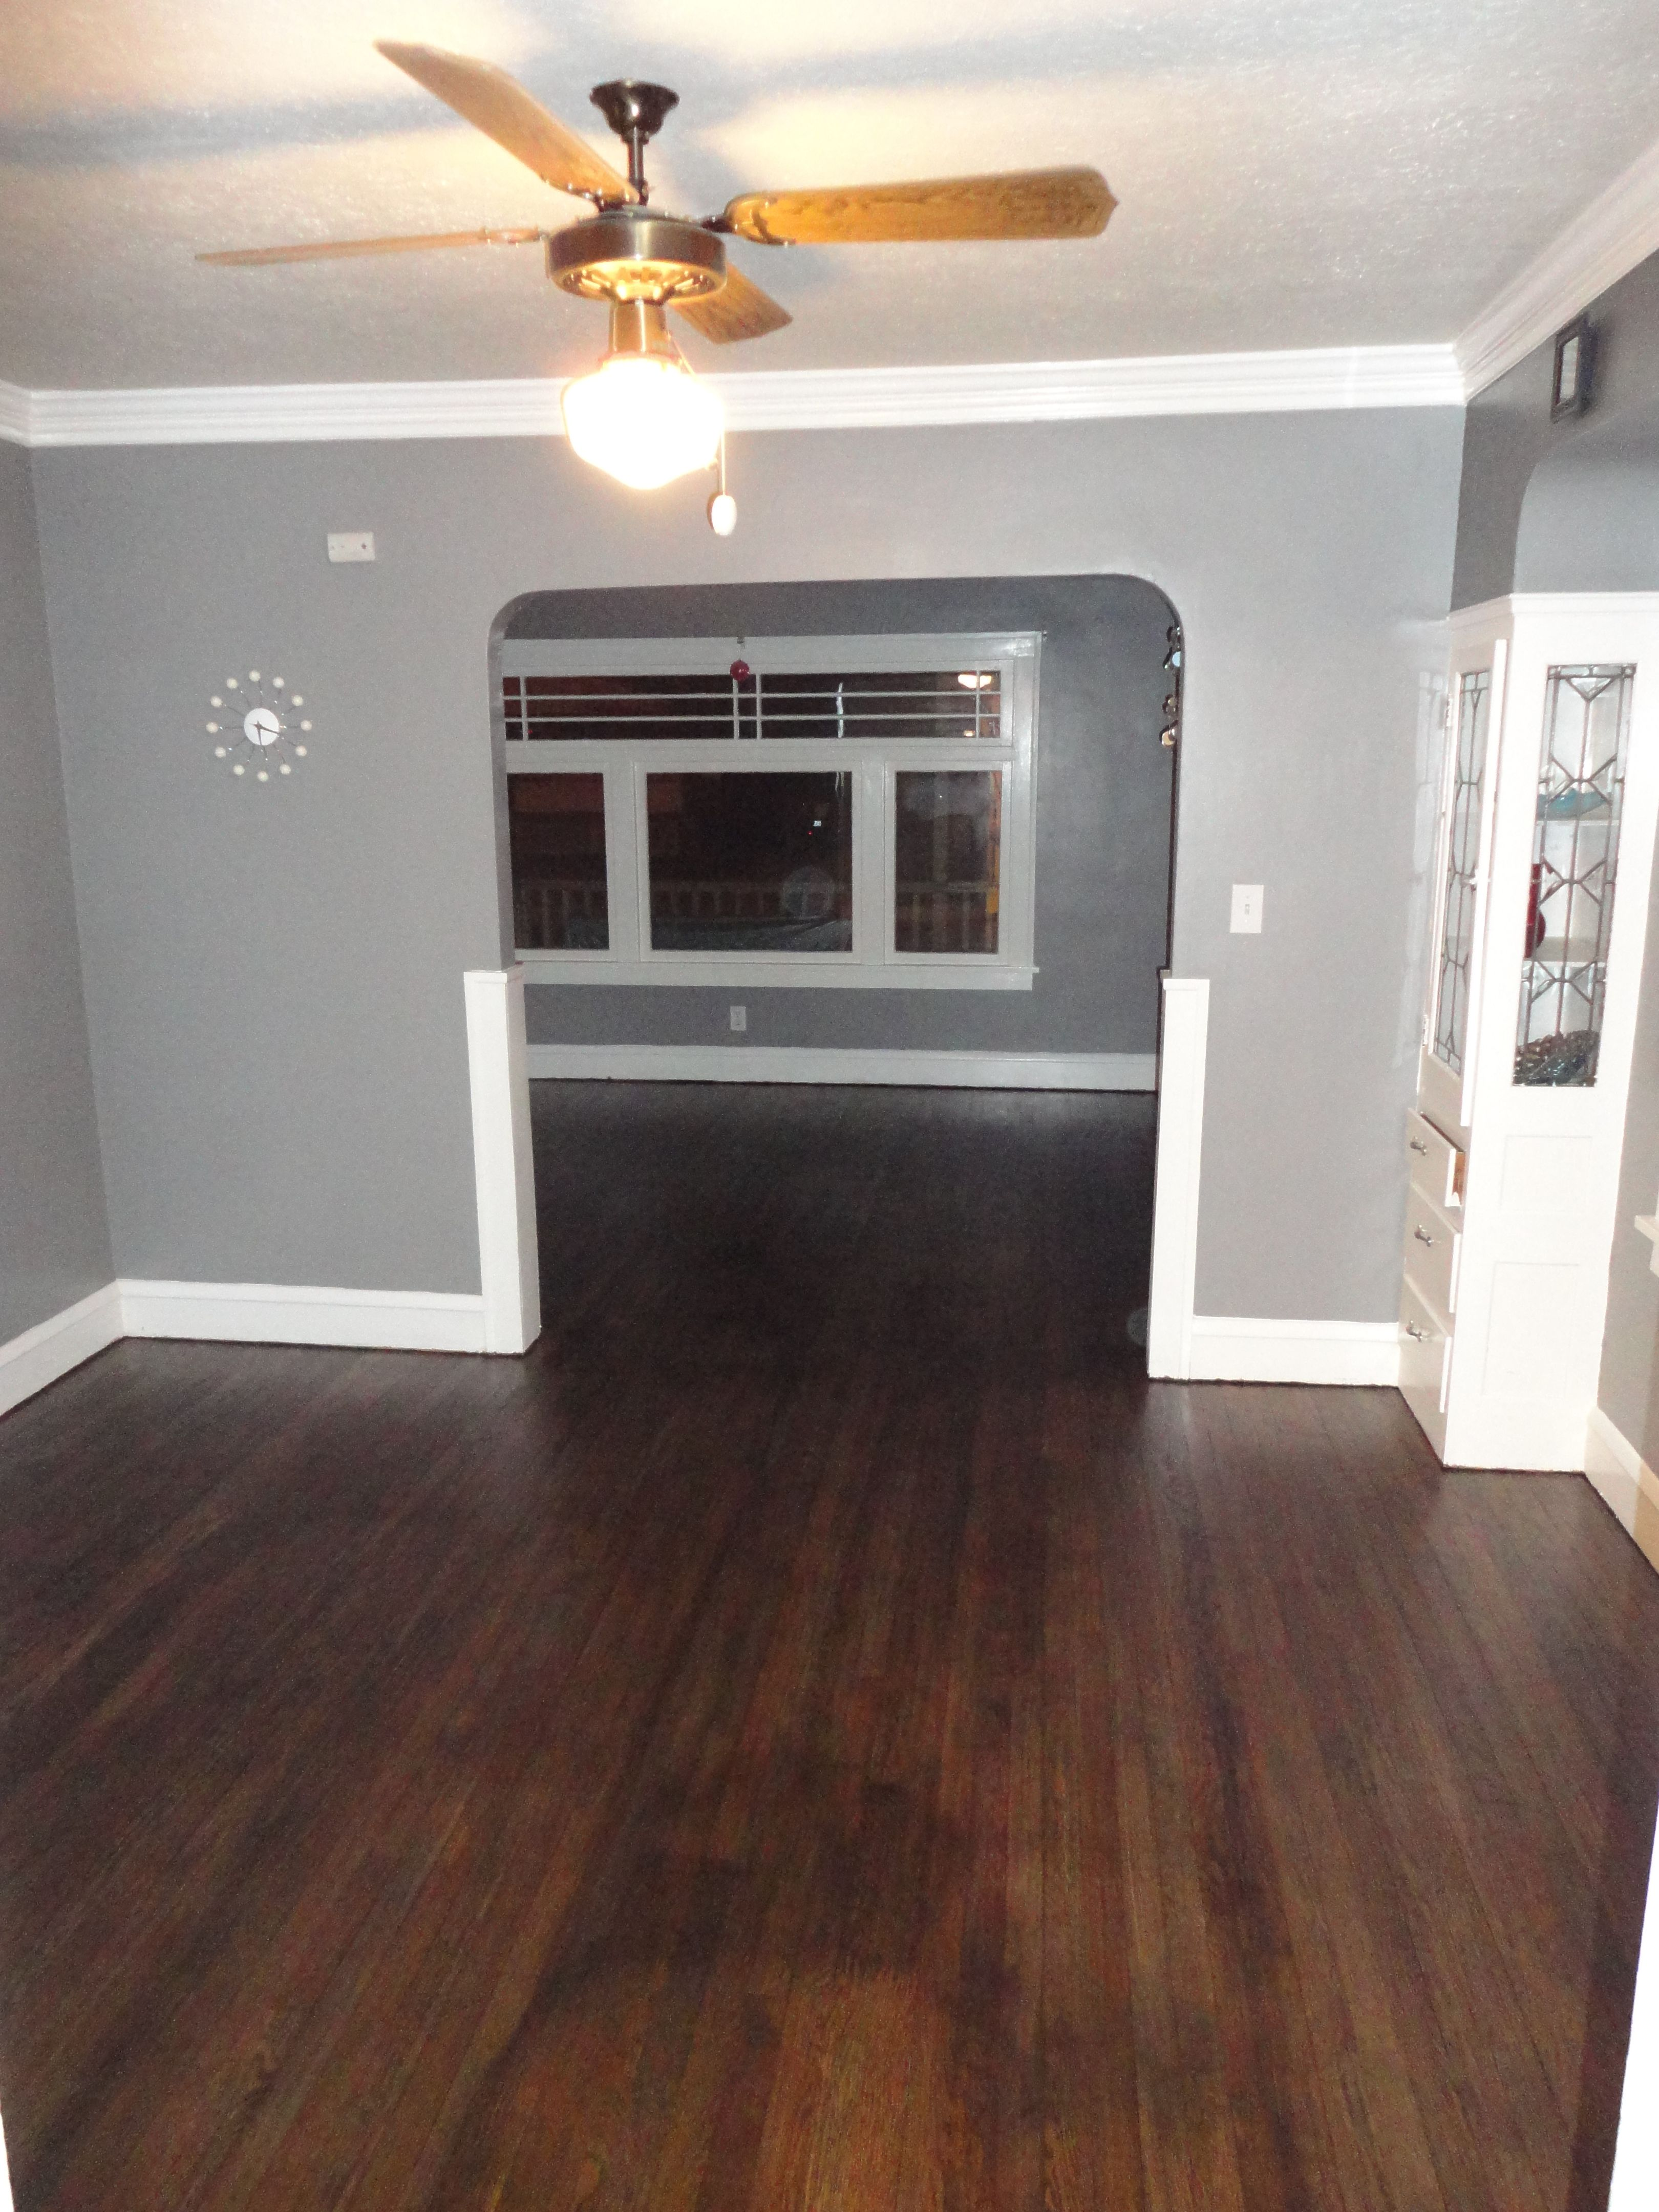 My New Look Living And Dining Room Area With Freshly Painted Walls And Trim And Stained Hardwood Floors In Grey Hardwood Floors Grey Walls Trendy Living Rooms